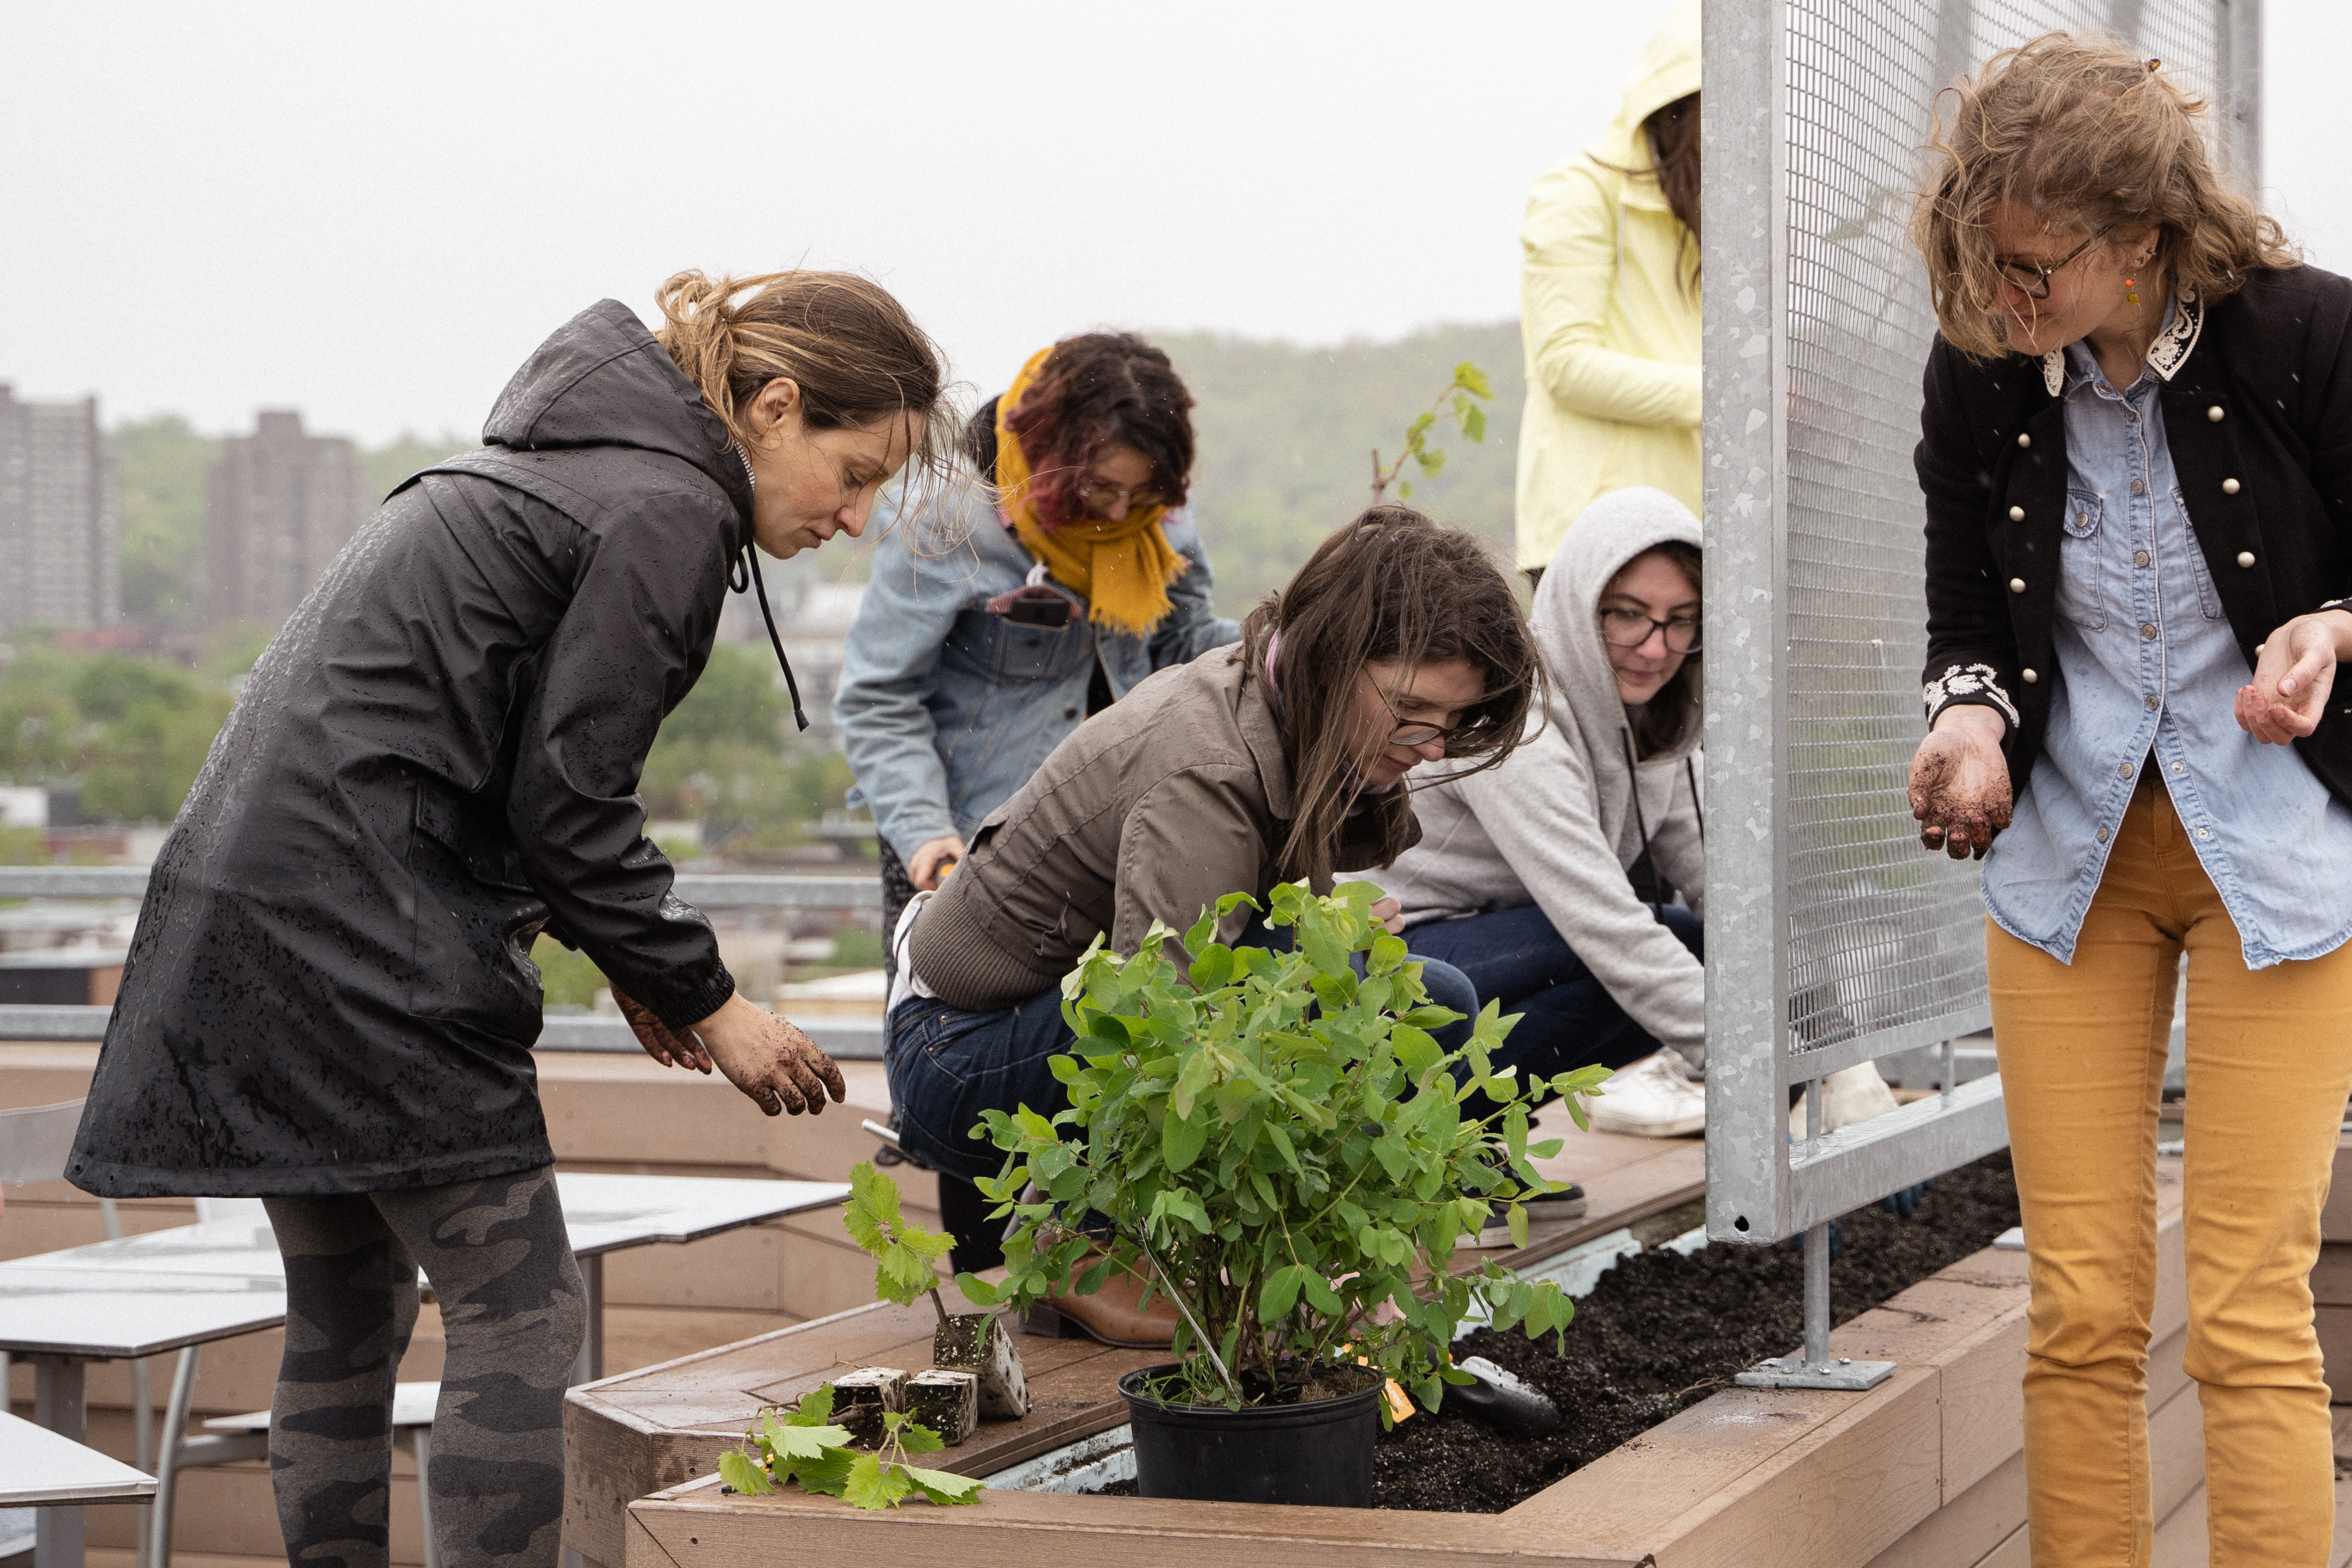 Ubisoft Montreal welcomes an urban vineyard on its rooftop